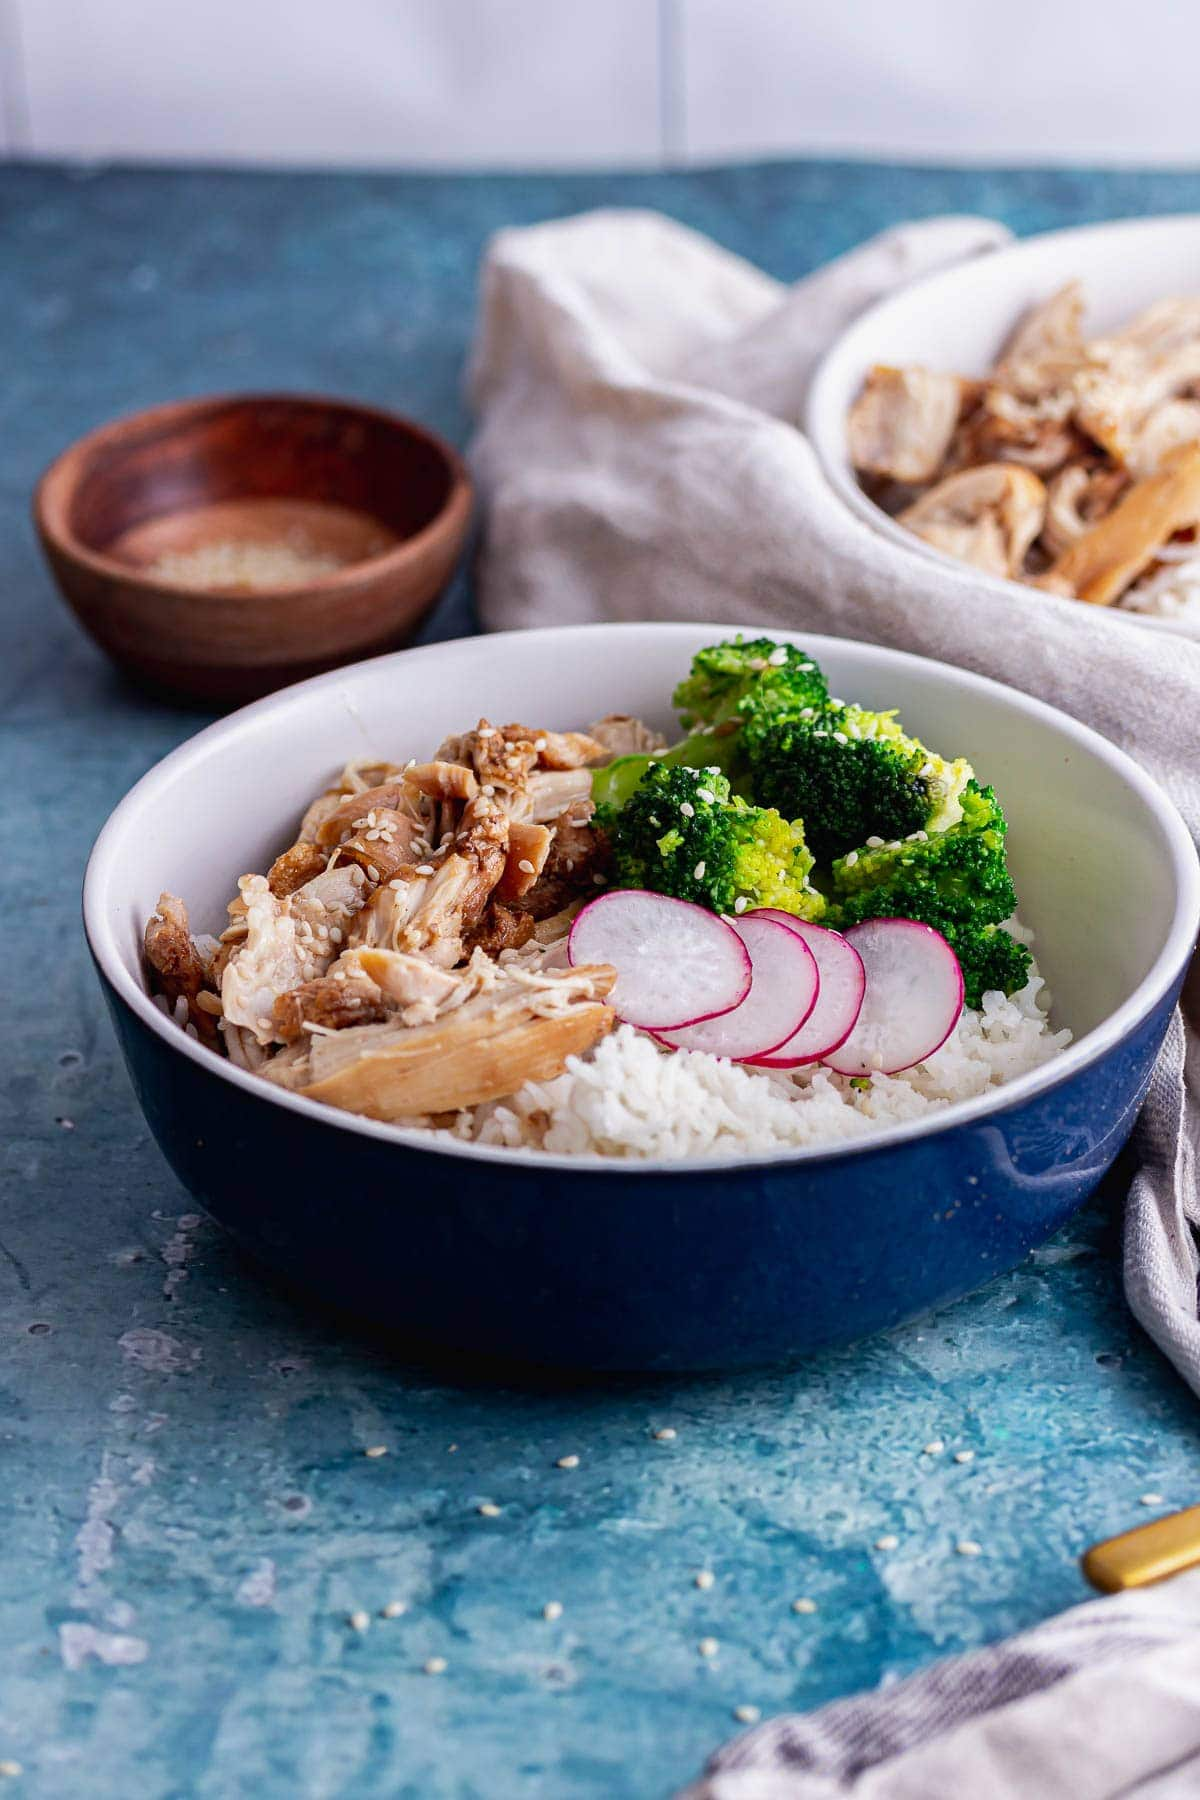 Blue bowl of pressure cooker chicken with broccoli and rice on a blue background